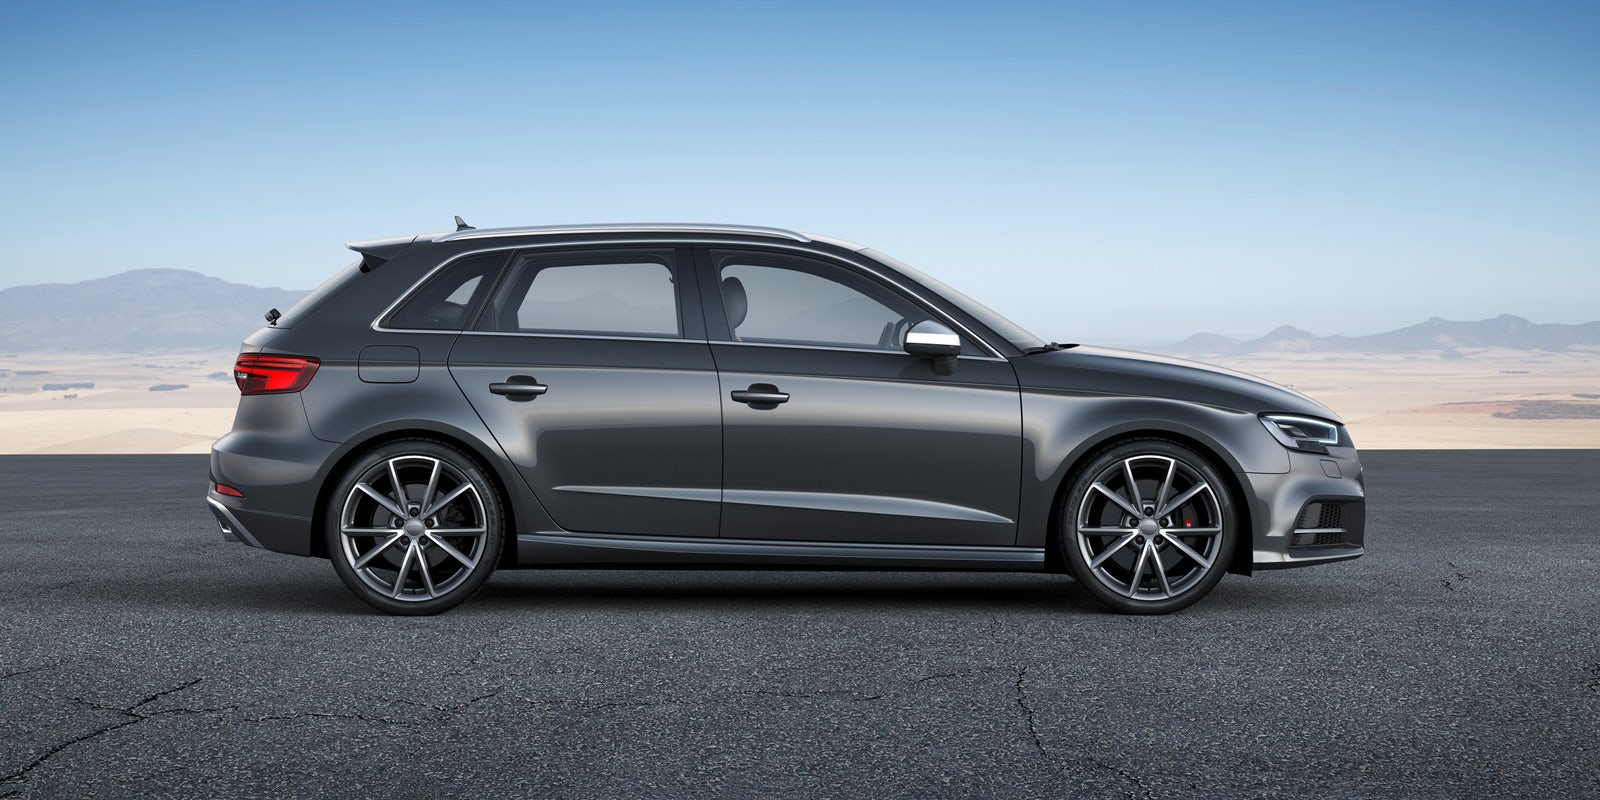 Audi S3 Sportback Offered With 4G LTE Technology